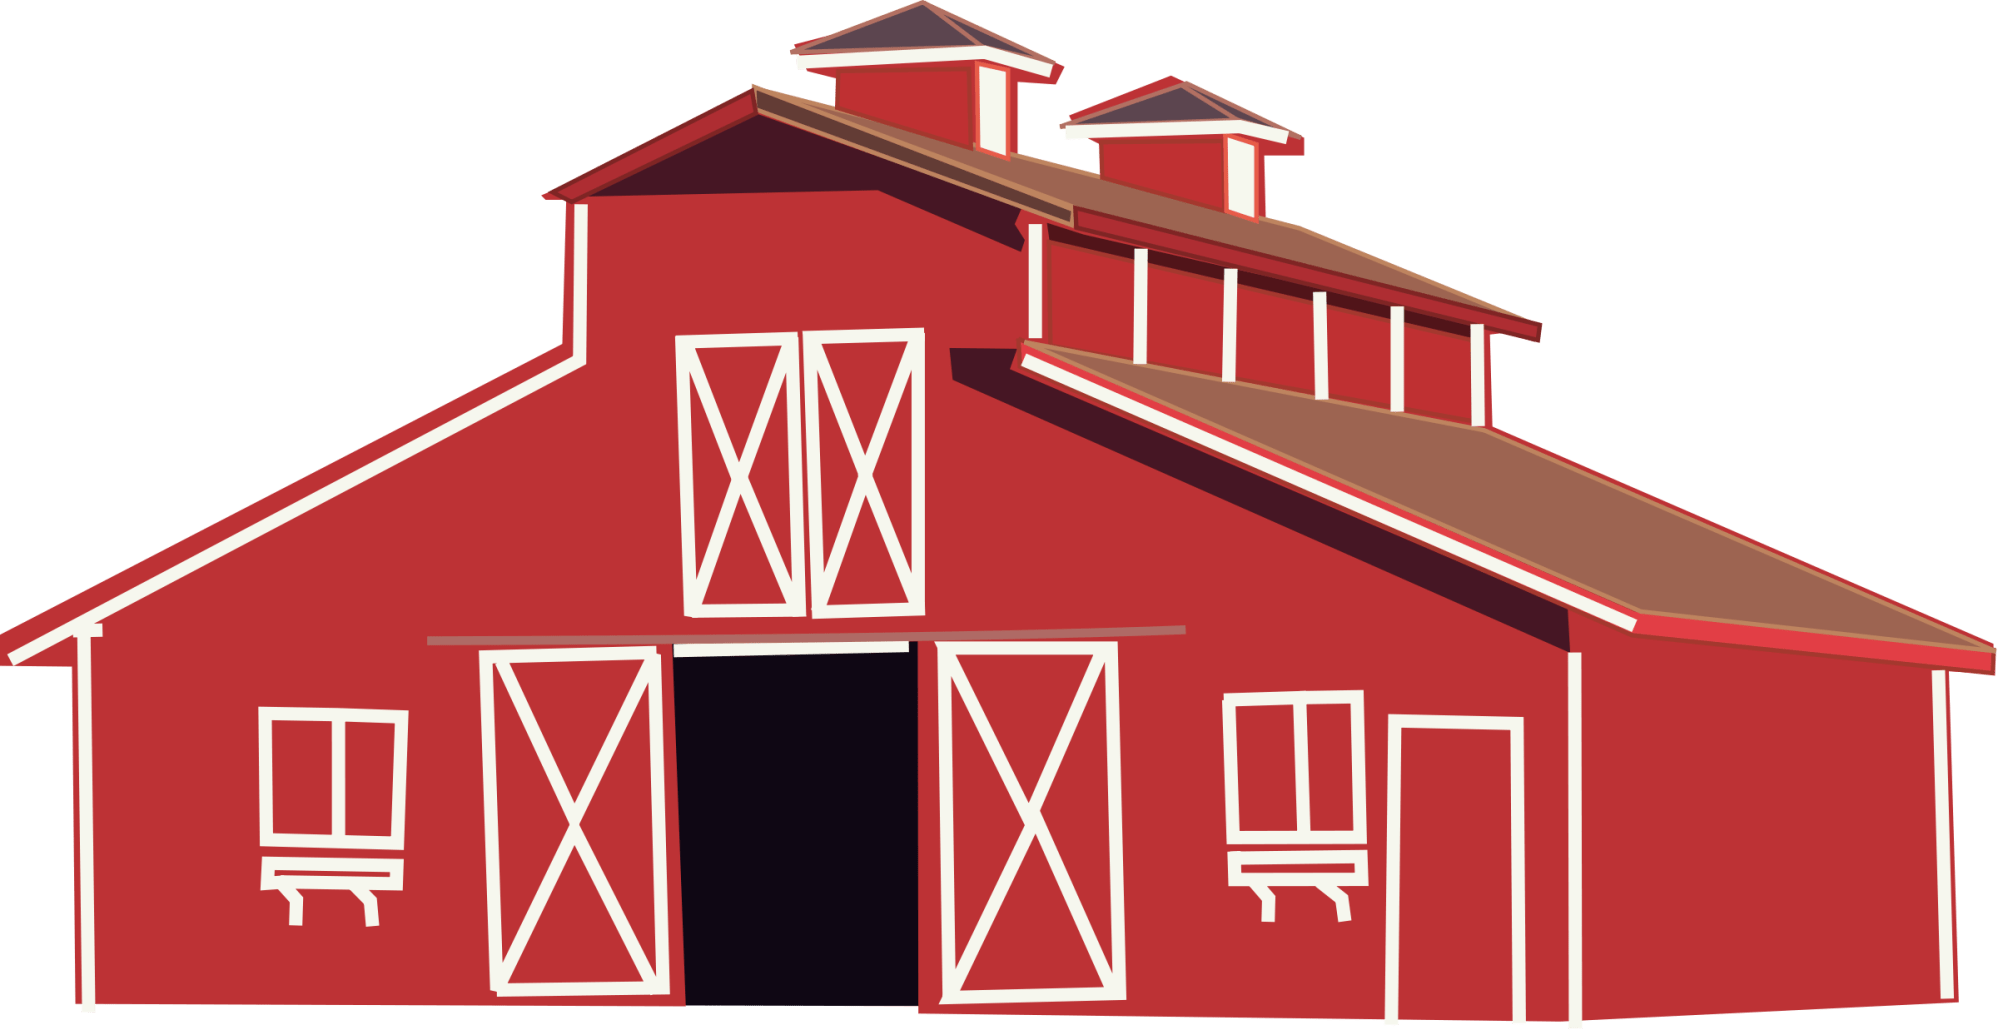 hight resolution of clipart horse stable red barn clip art